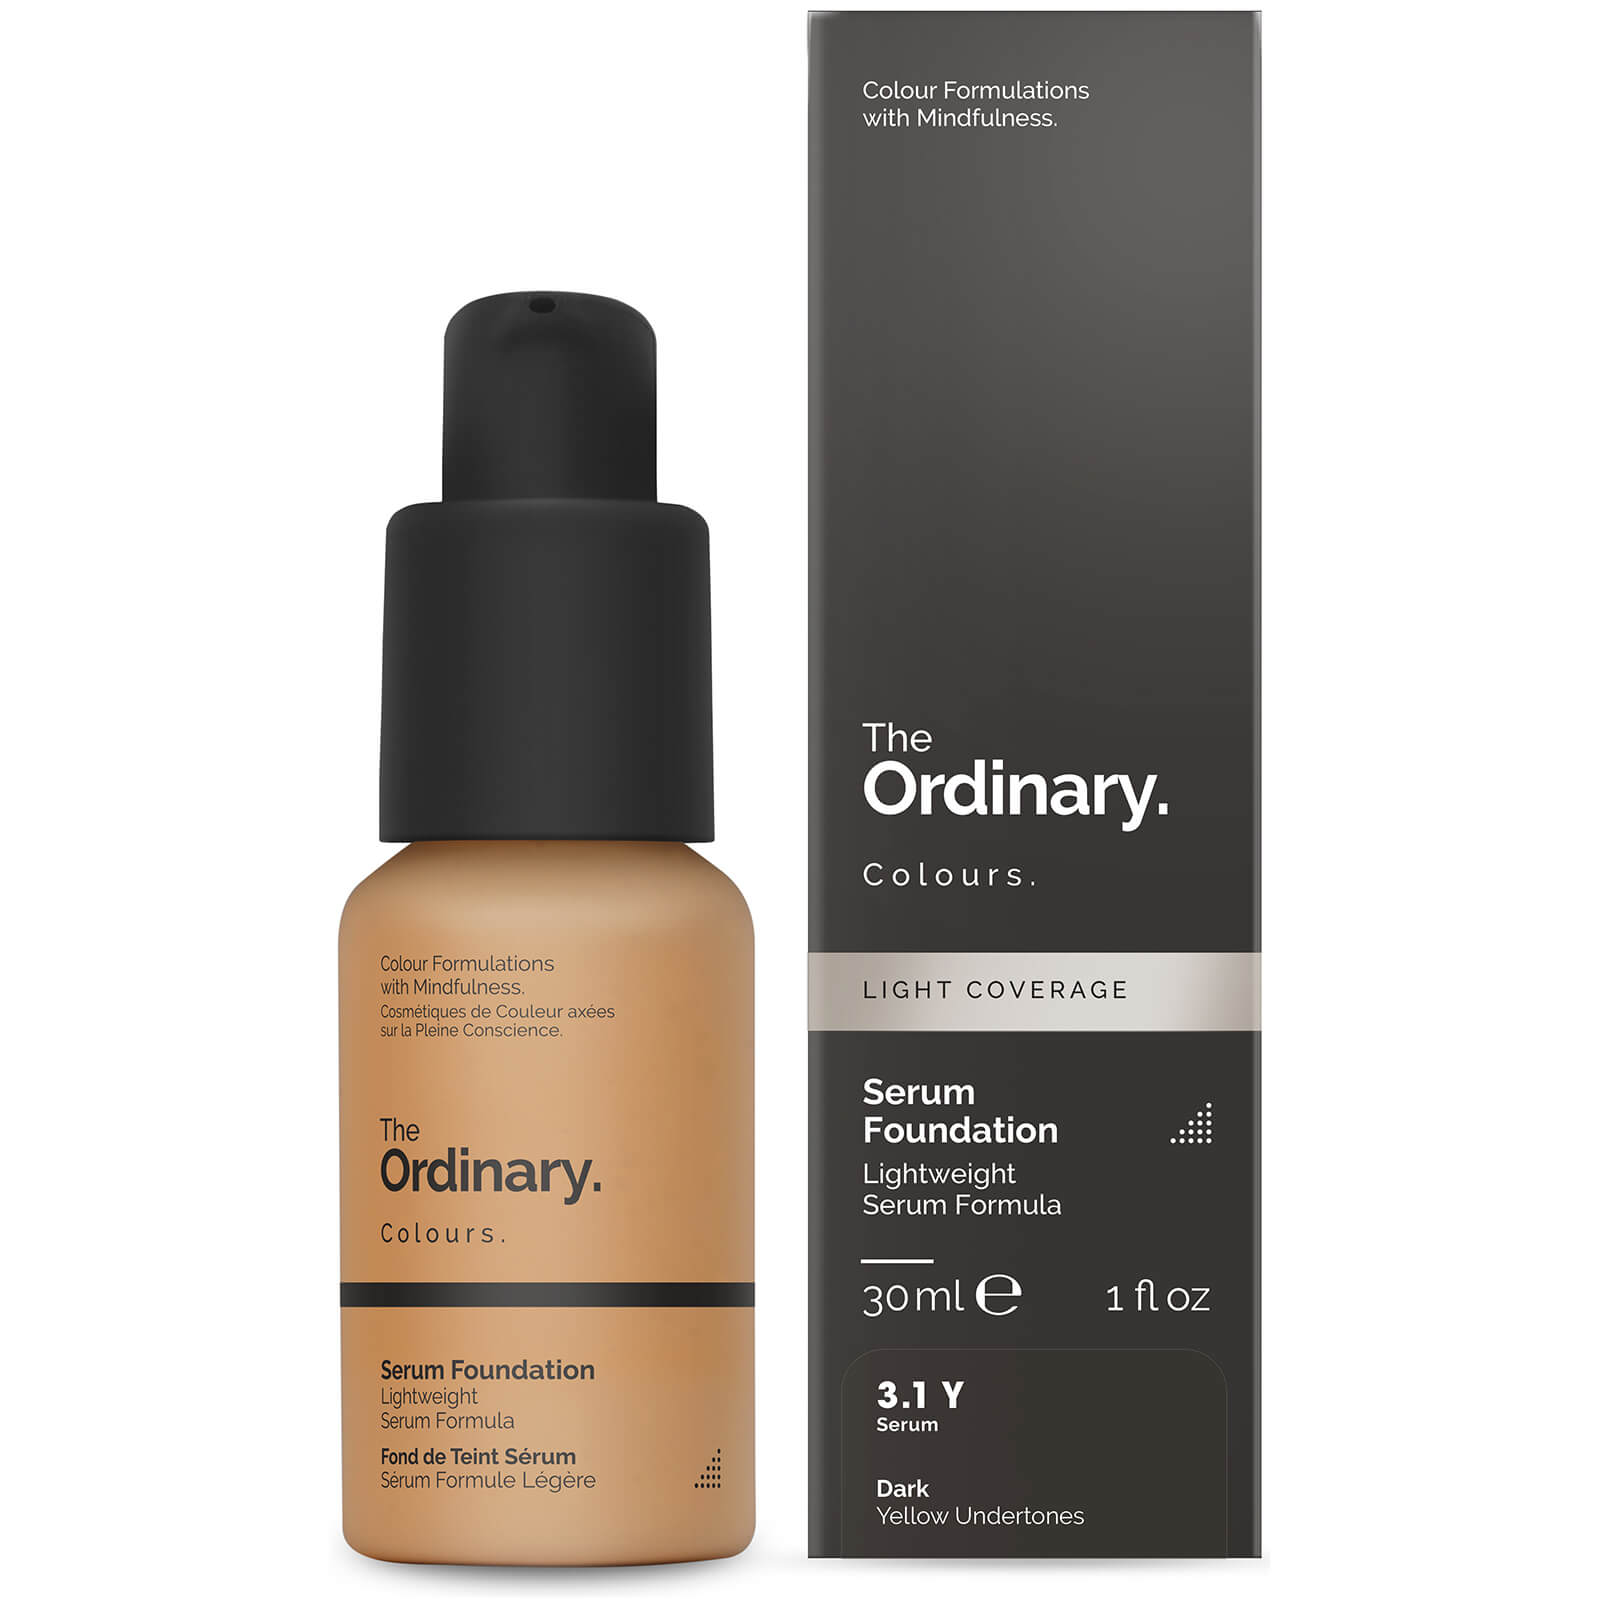 The Ordinary Serum Foundation with SPF 15 by The Ordinary Colours 30ml (Various Shades) - 3.1Y